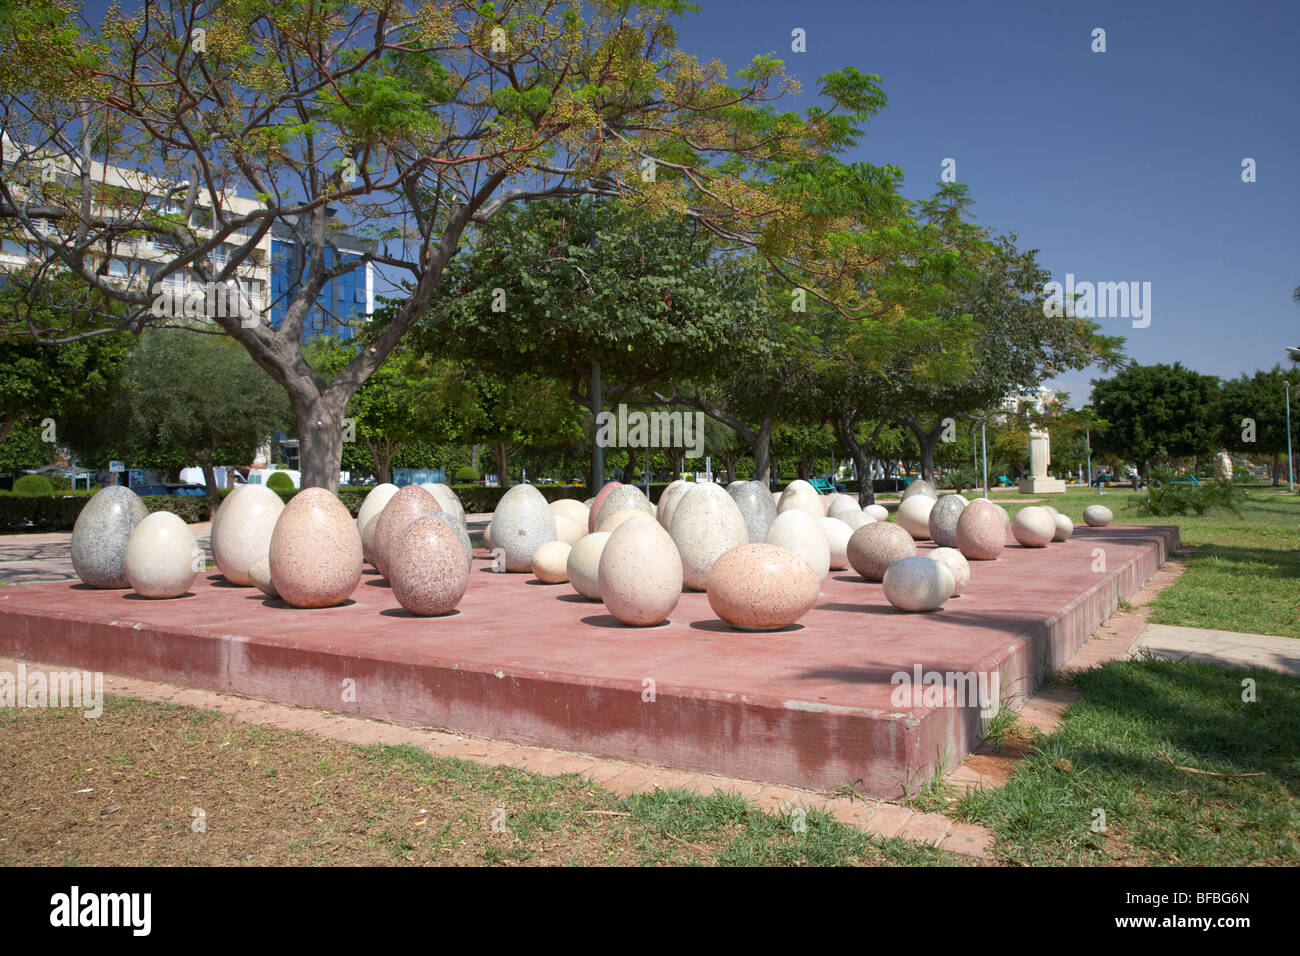 birth sculpture by maria kyprianou in Limassol sculpture park in twin cities park on reclaimed land lemesos republic - Stock Image